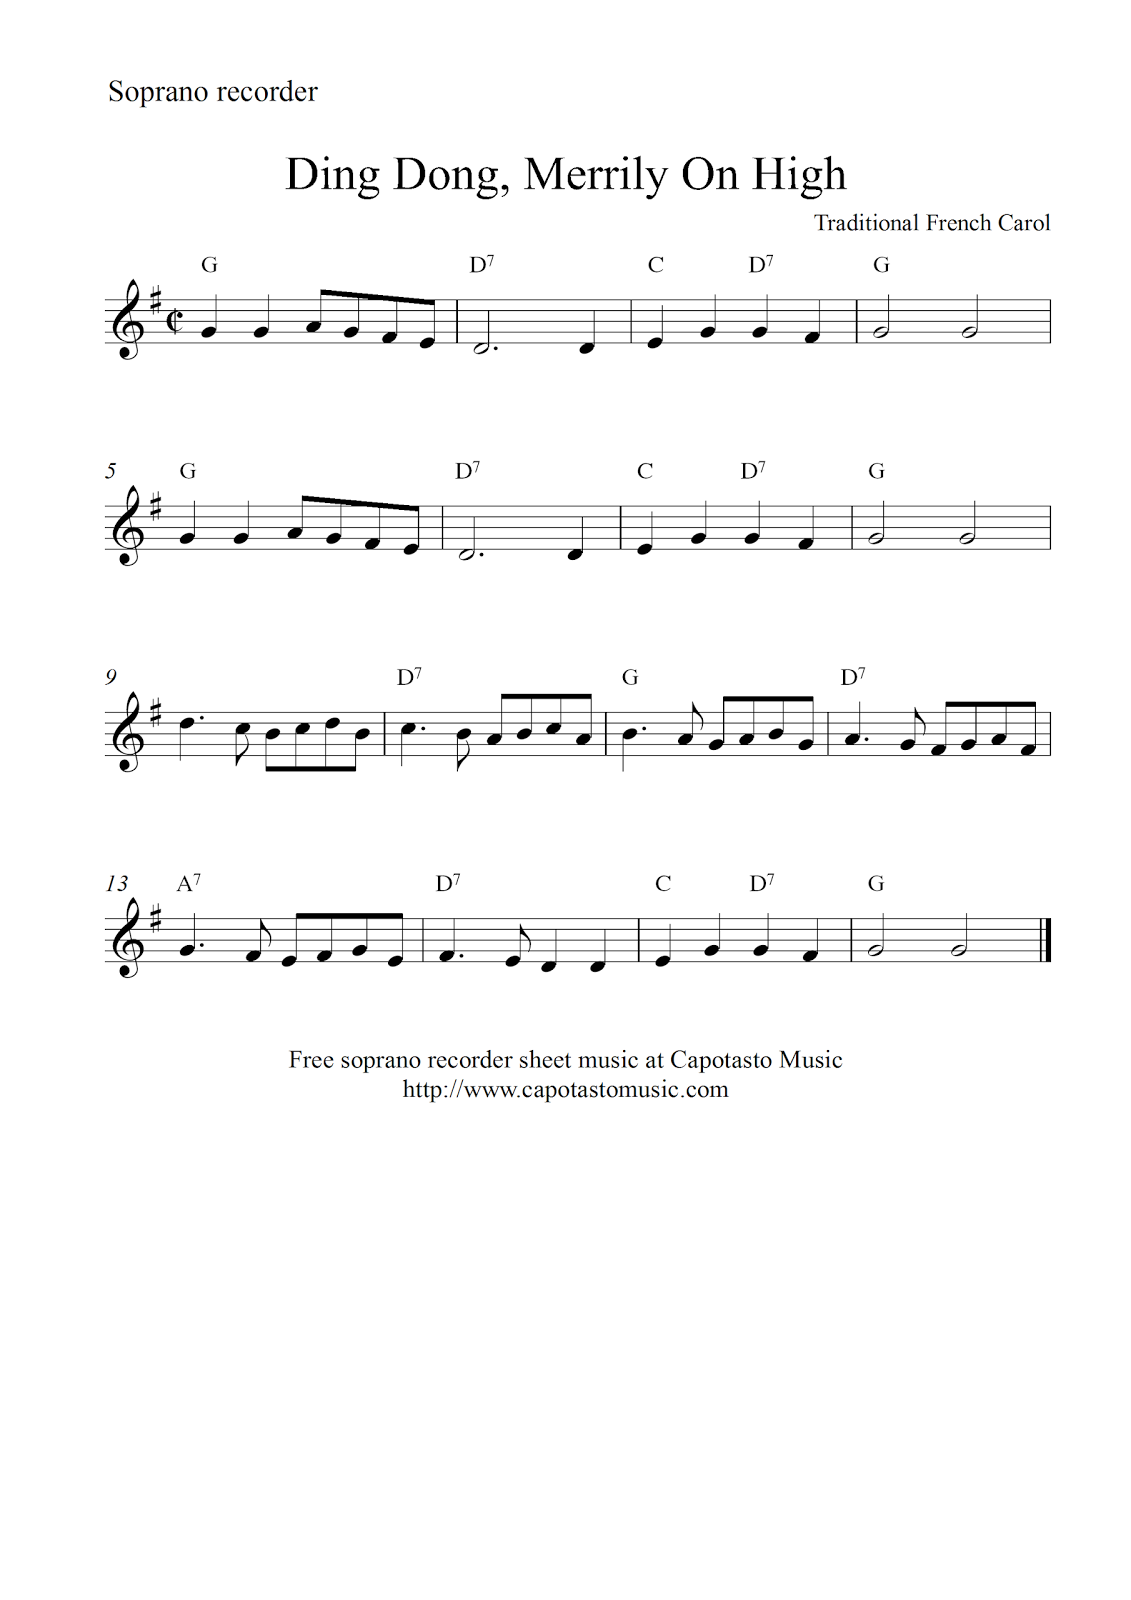 Free Christmas soprano sheet music, Ding Dong, Merrily On High